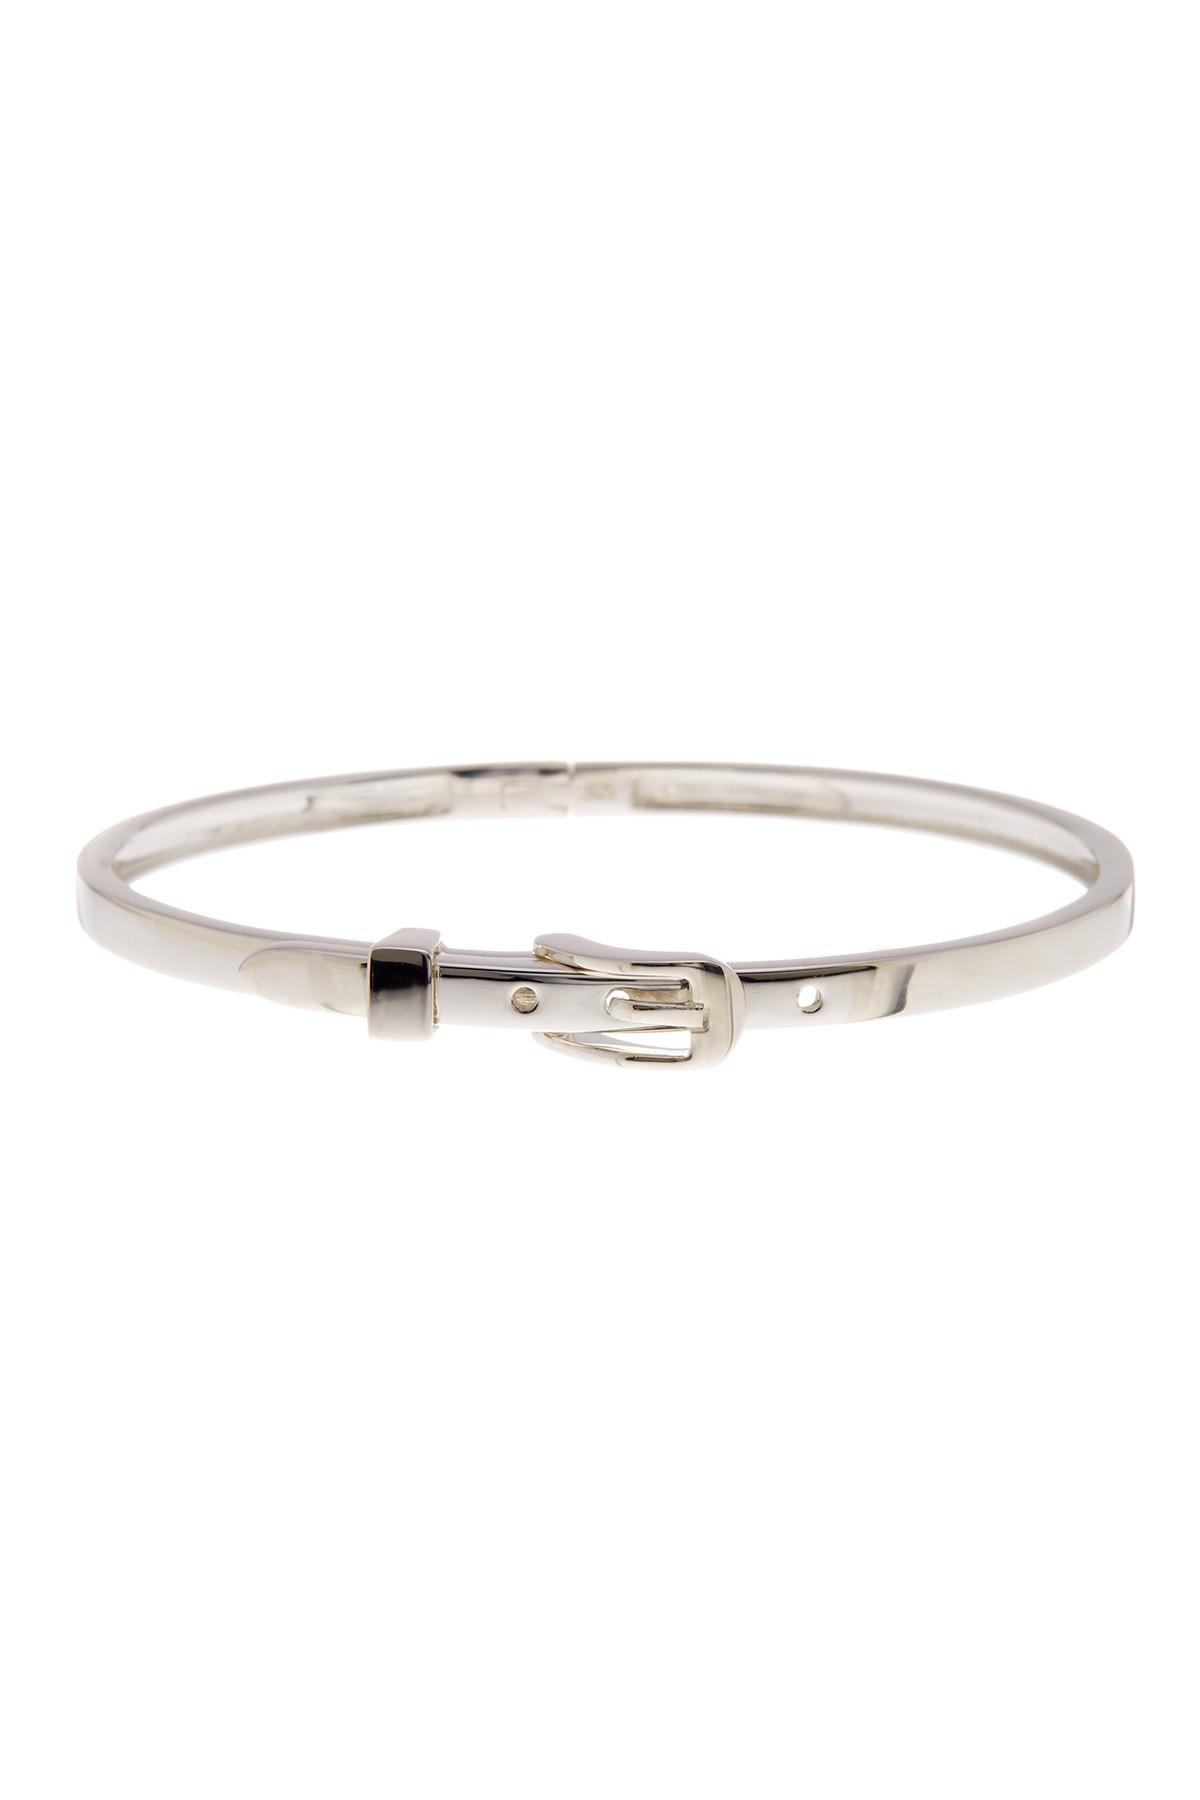 Shinola Thin Sterling Silver Buckle Bracelet